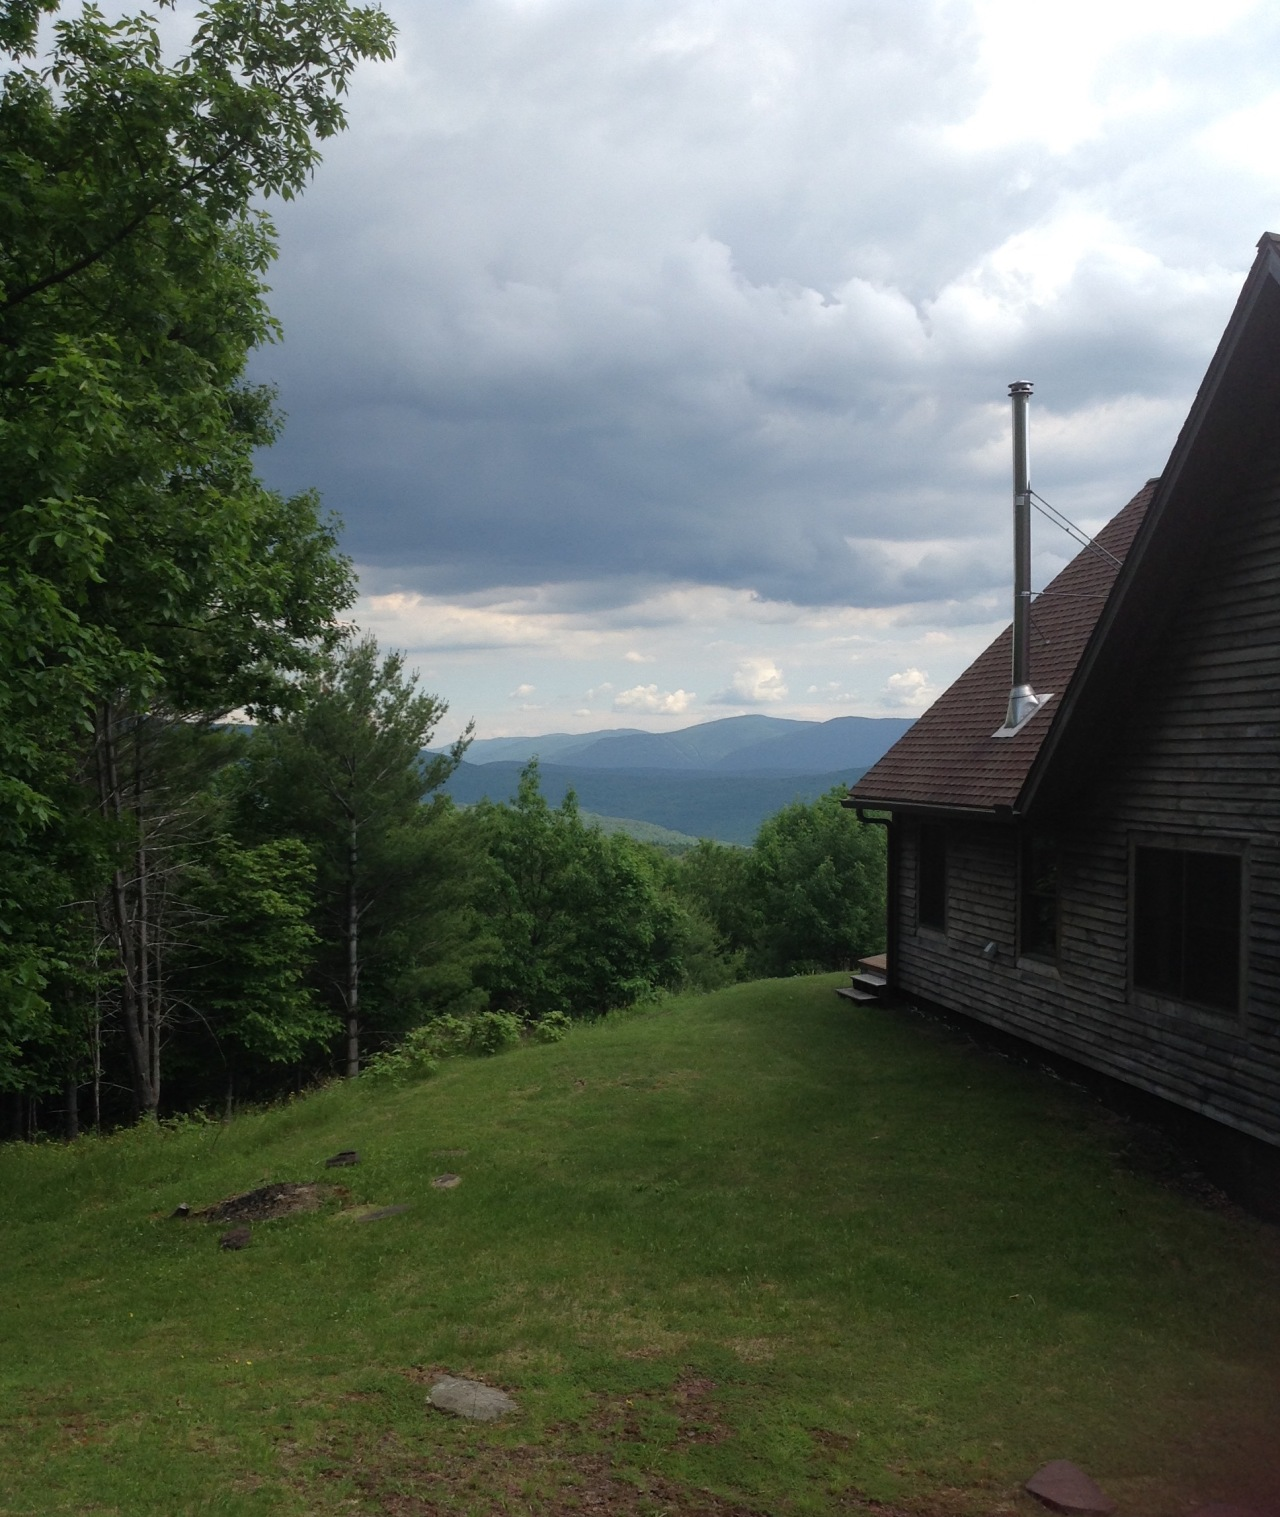 The back of our house, looking towards Hunter Mountain, about 15 miles away. Catskills. [Photo by me, 2016.]